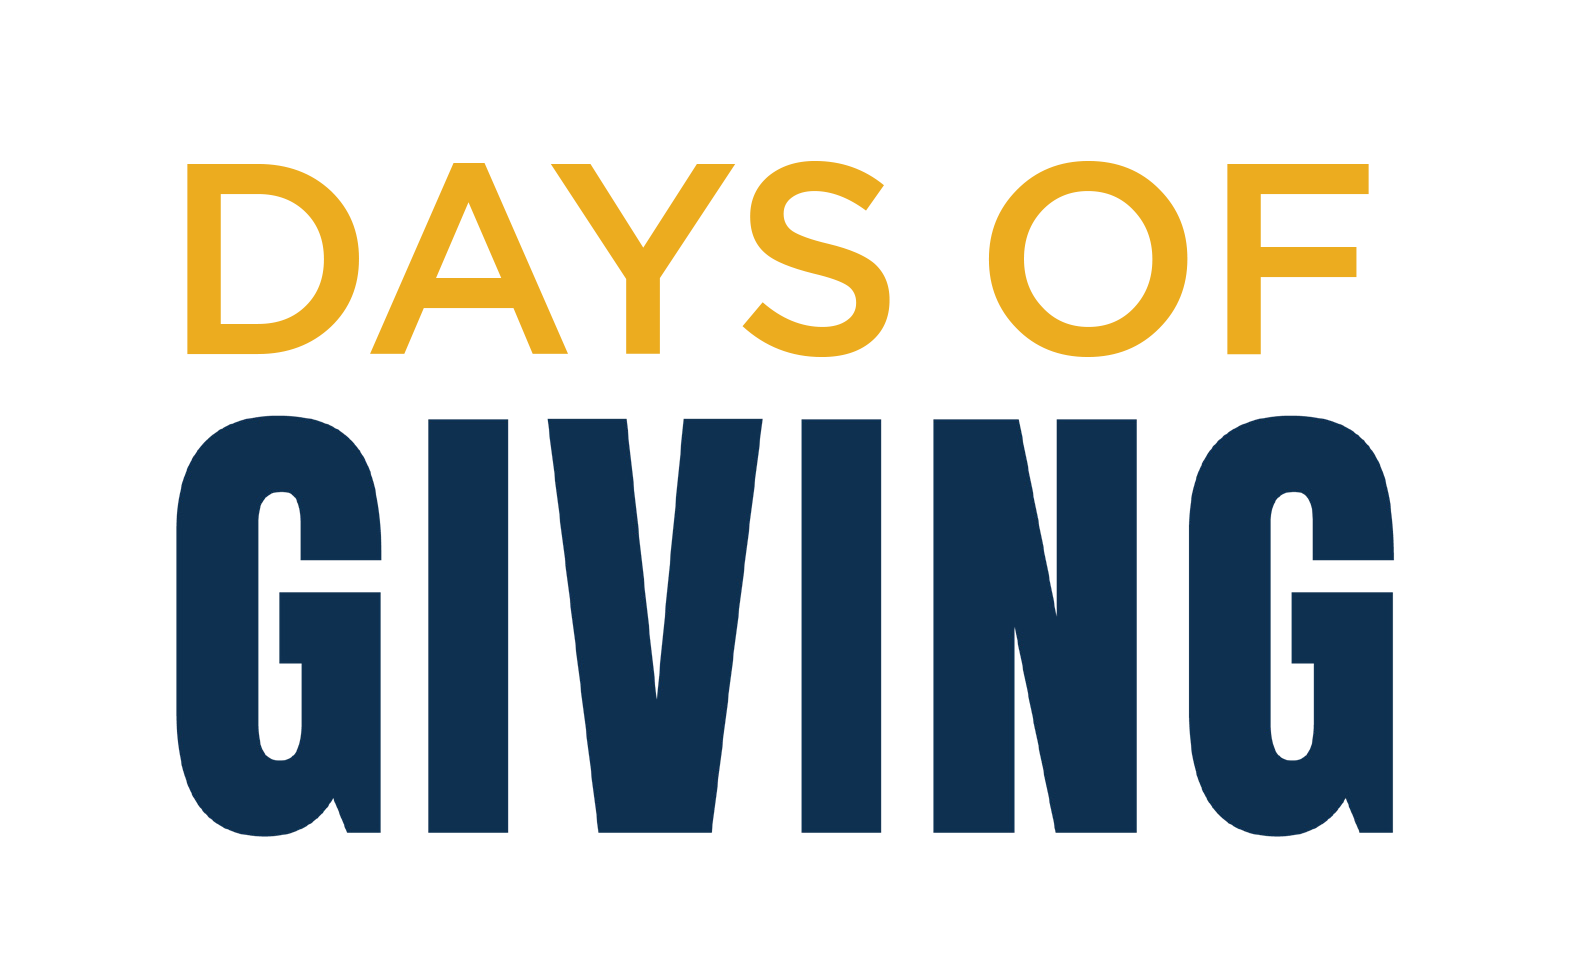 Days of giving